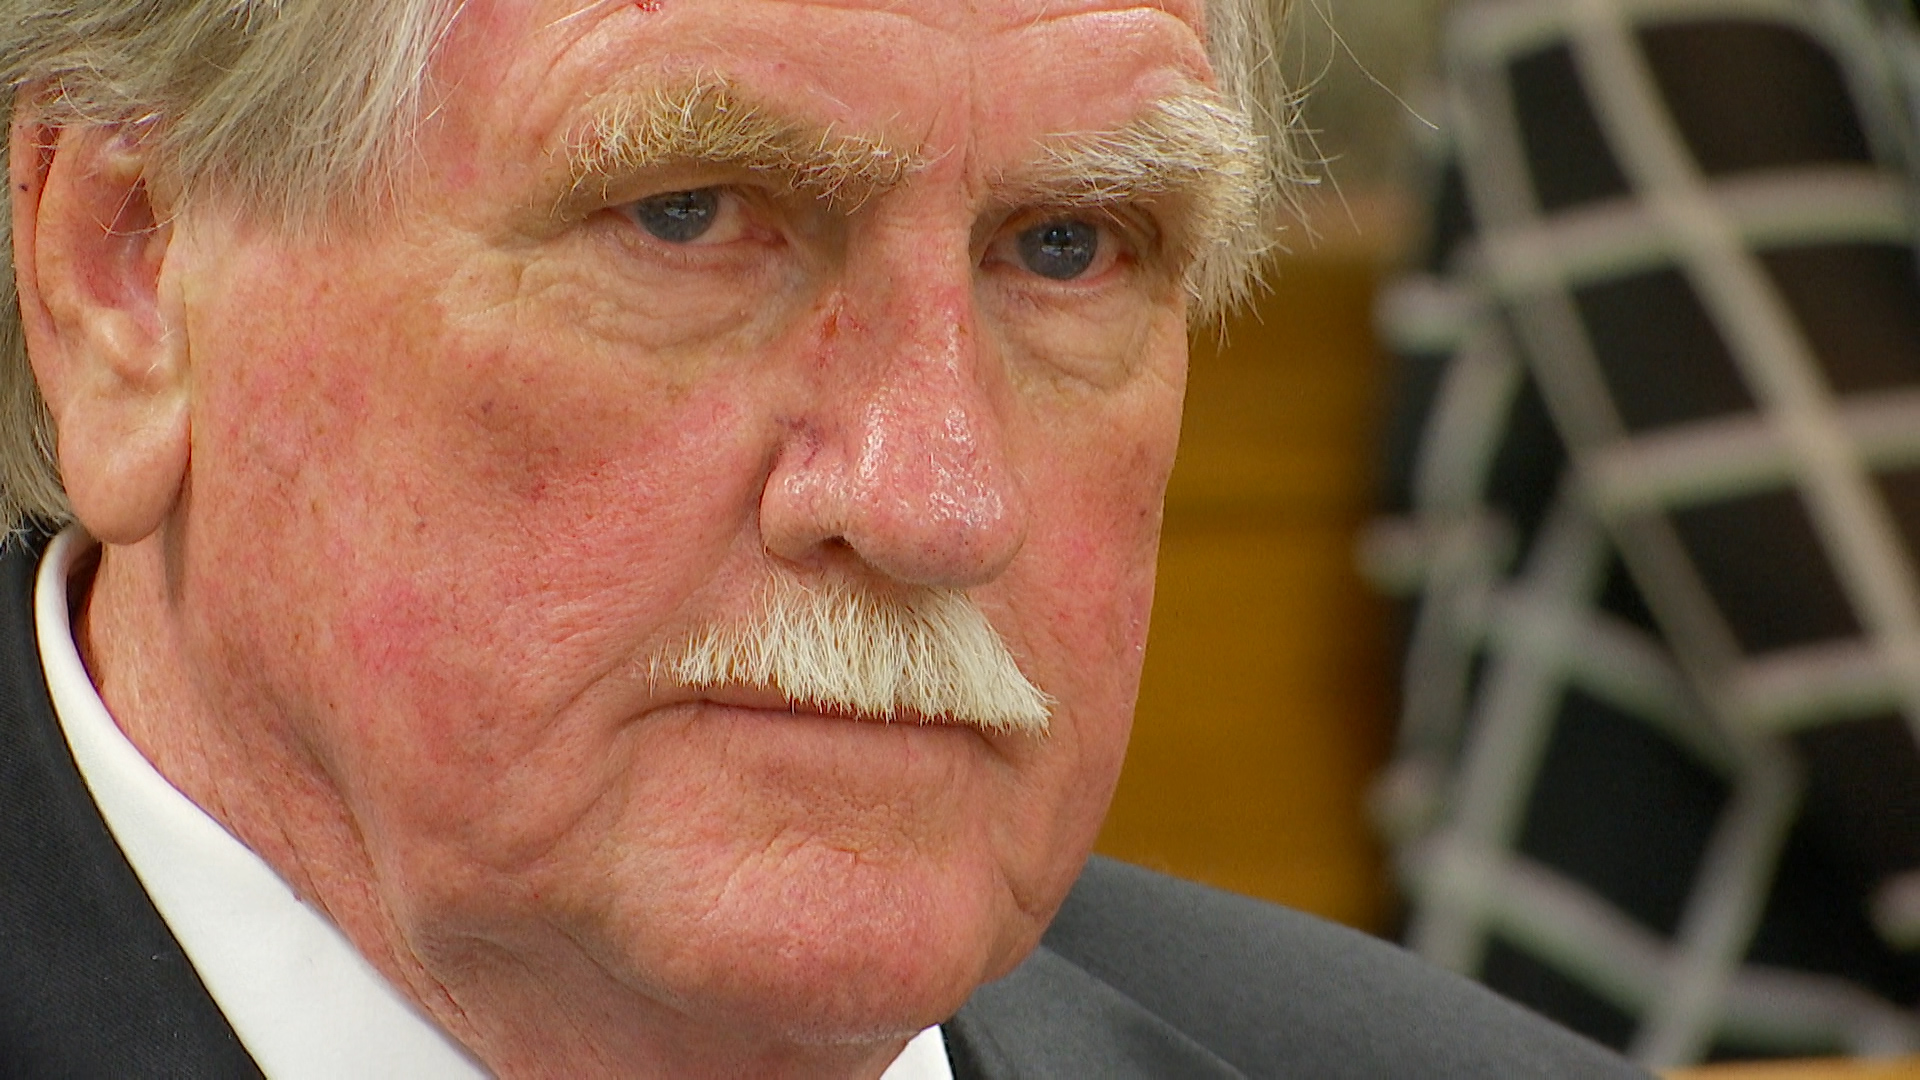 Former Huntington City Councilman in court Friday